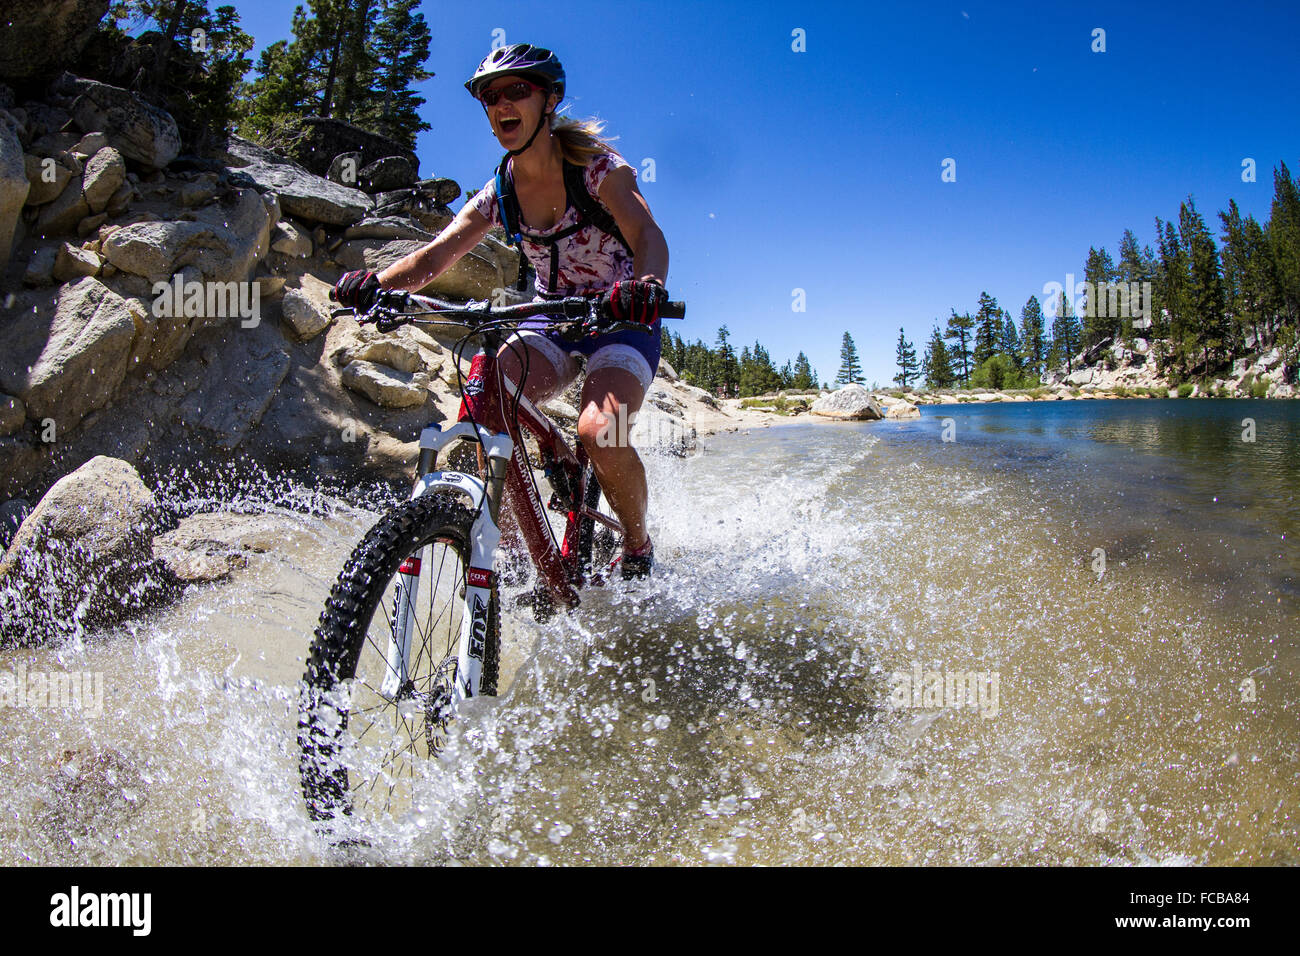 Mountain bike sui Flume Trail, Tahoe, CA Immagini Stock